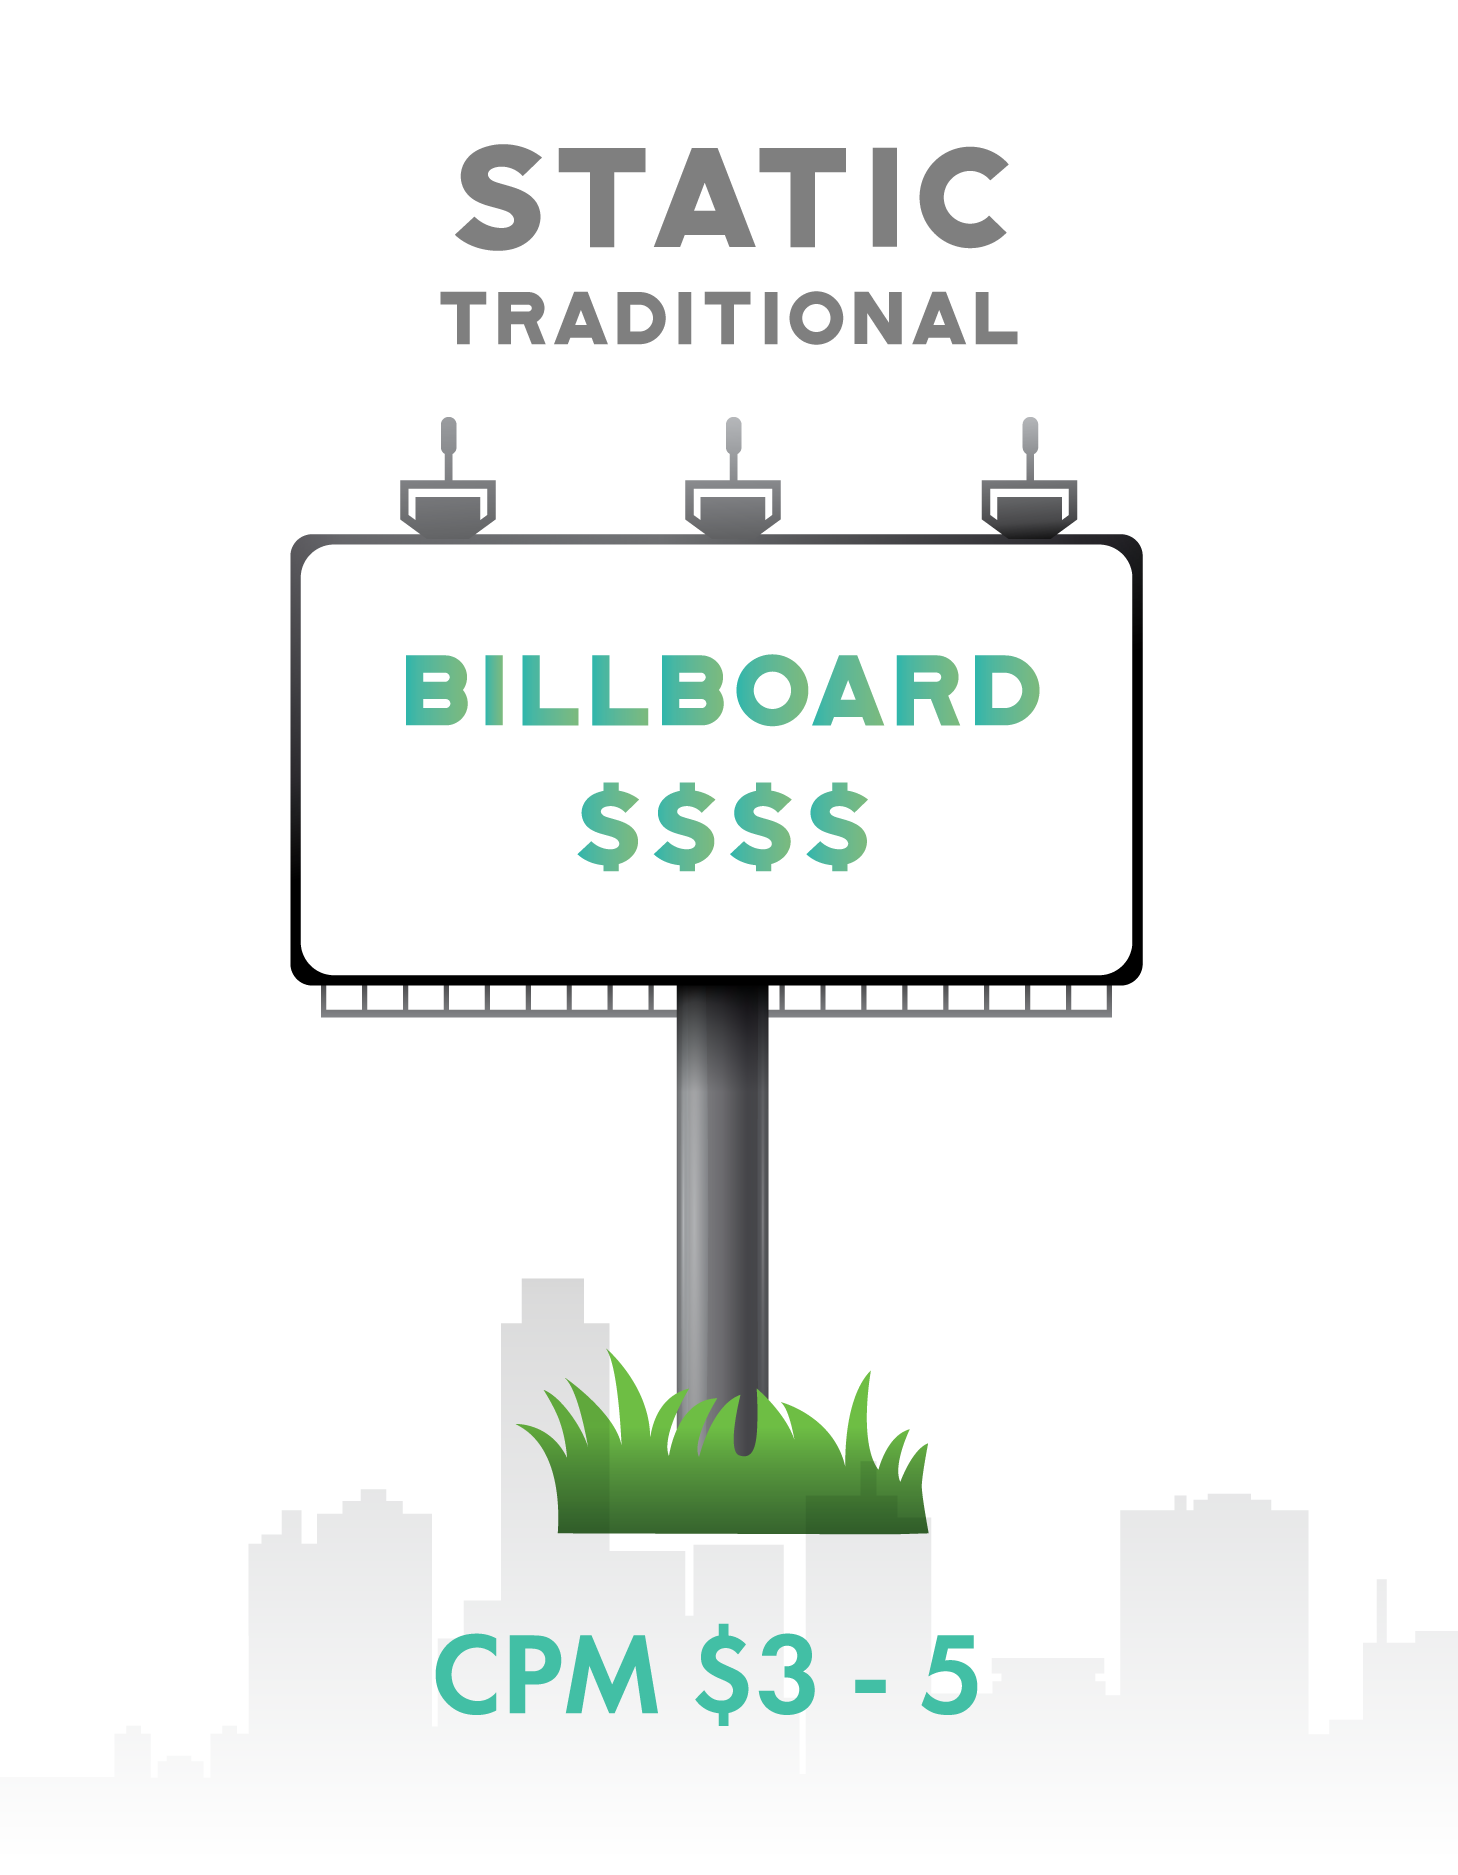 Billboard Side New 10-25-01.png